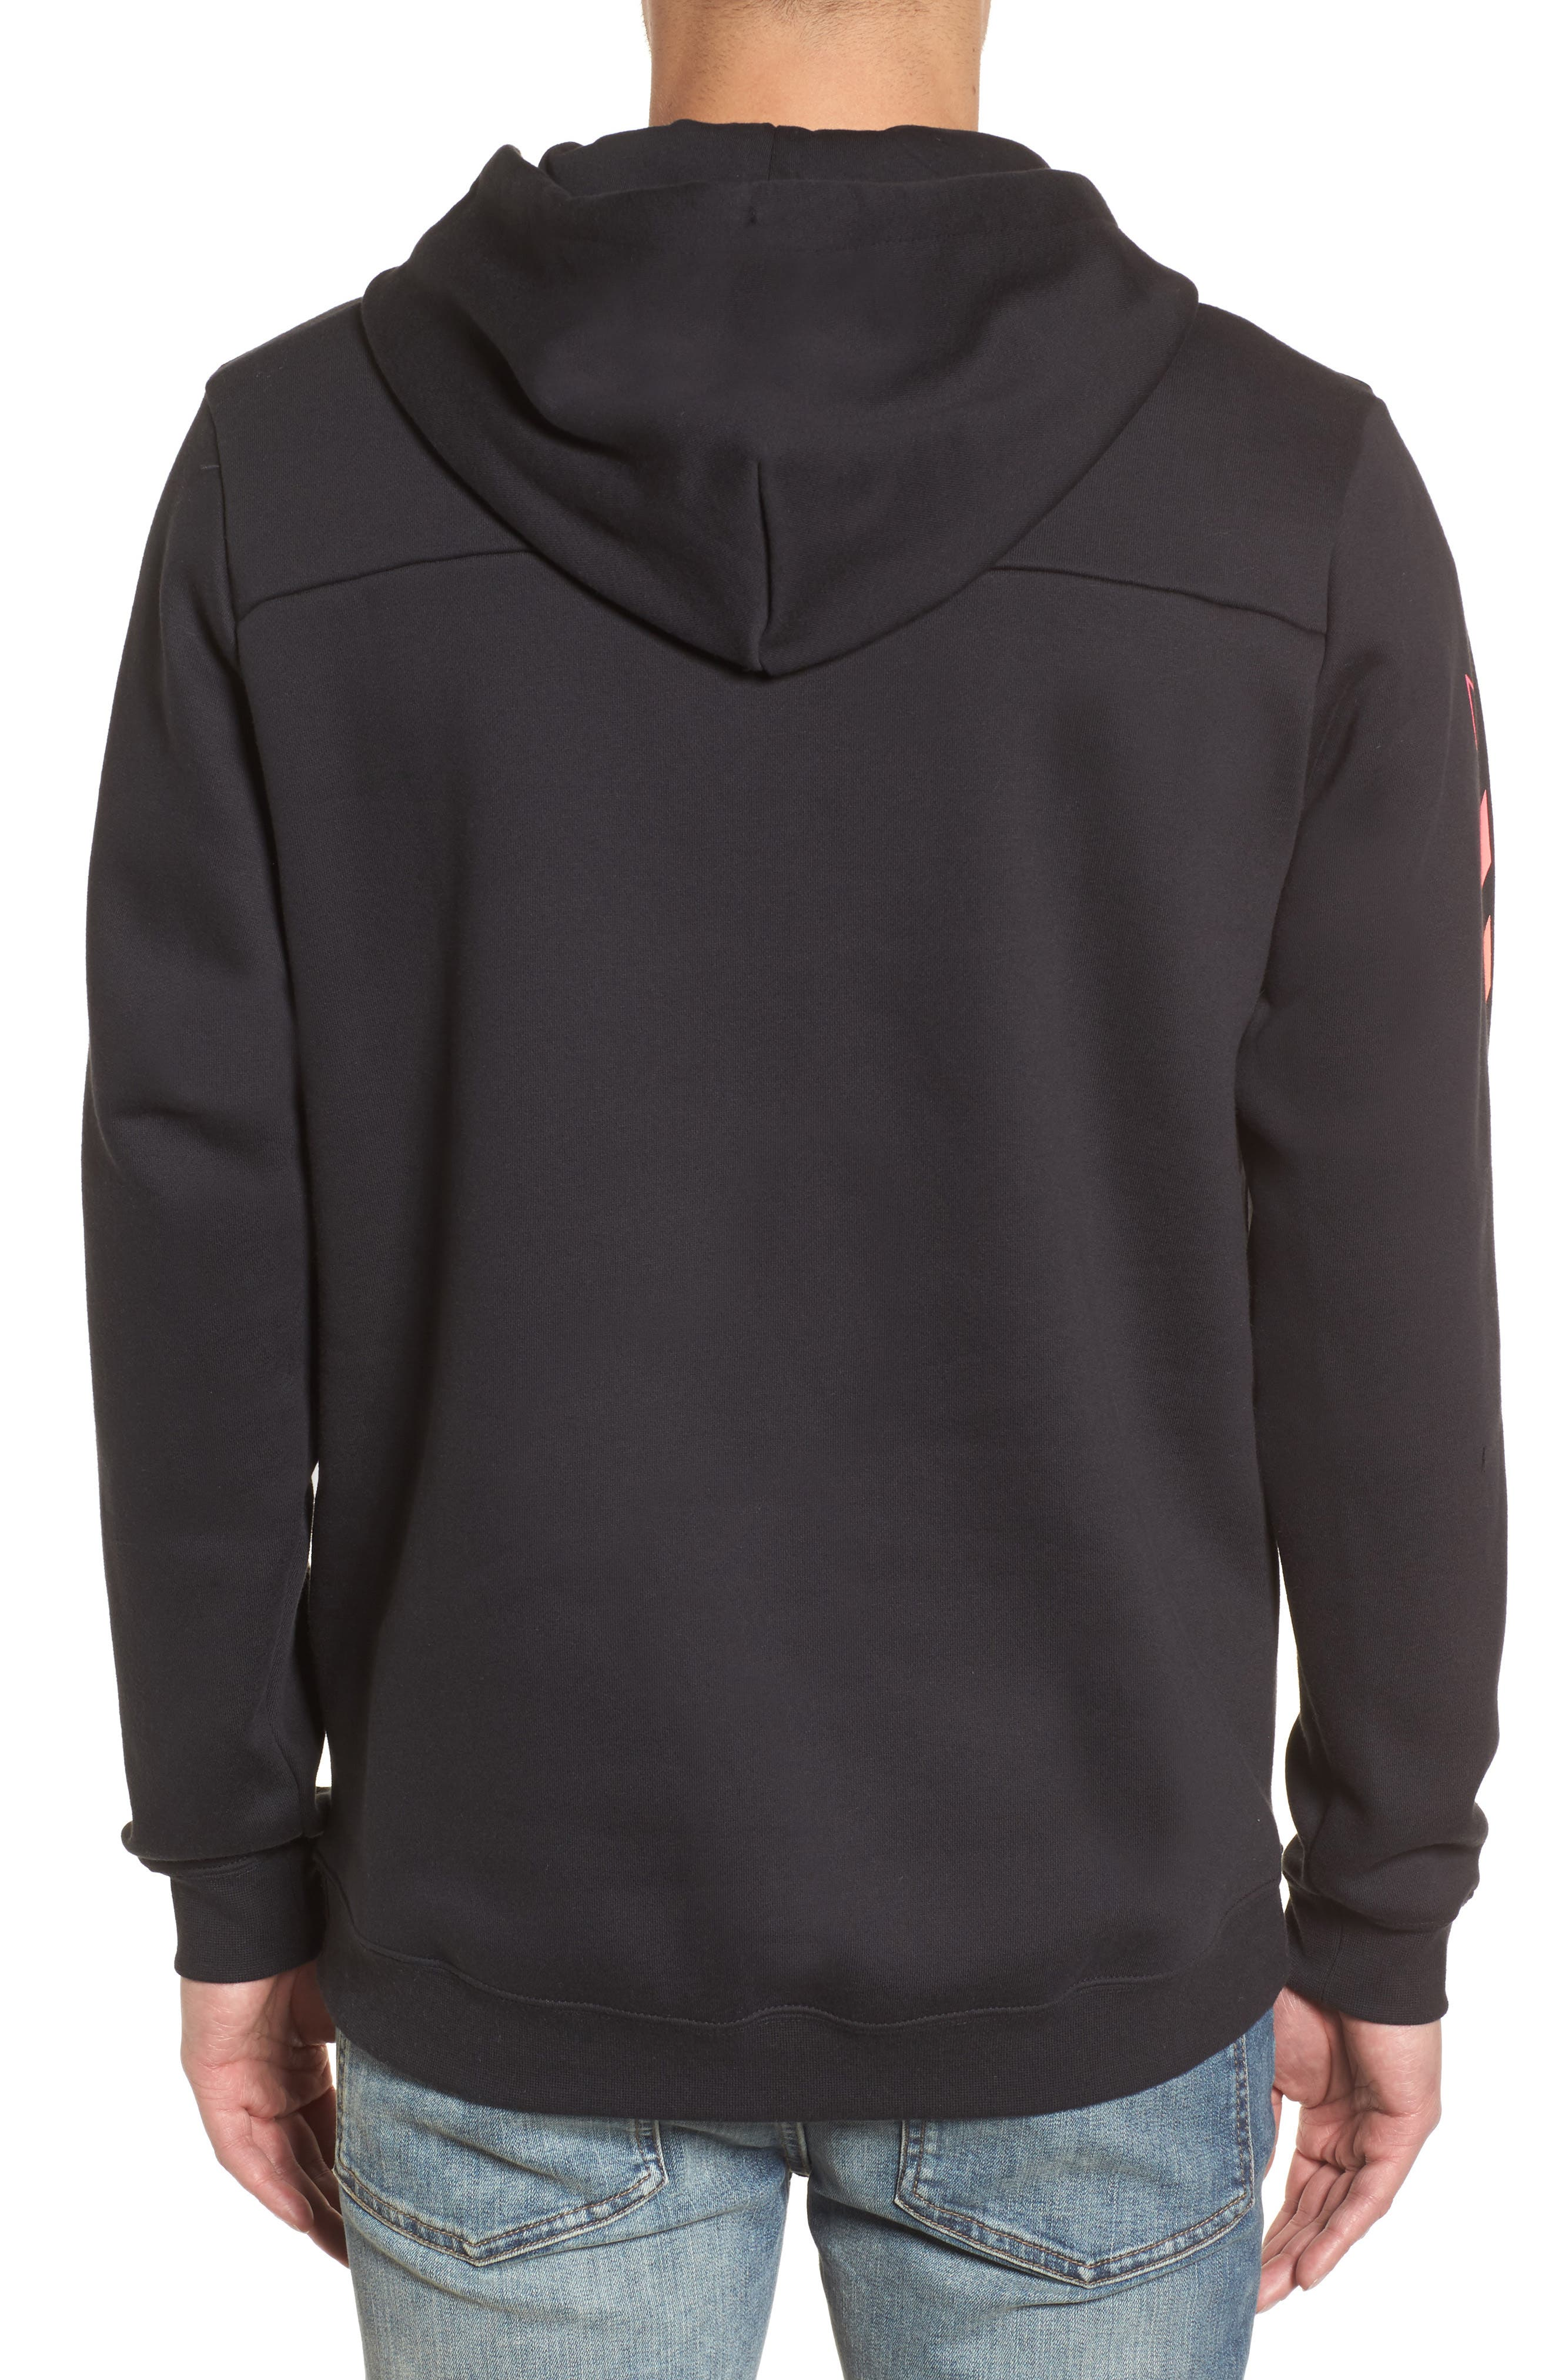 Surf Check Sig Zane Pullover Hoodie,                             Alternate thumbnail 2, color,                             010